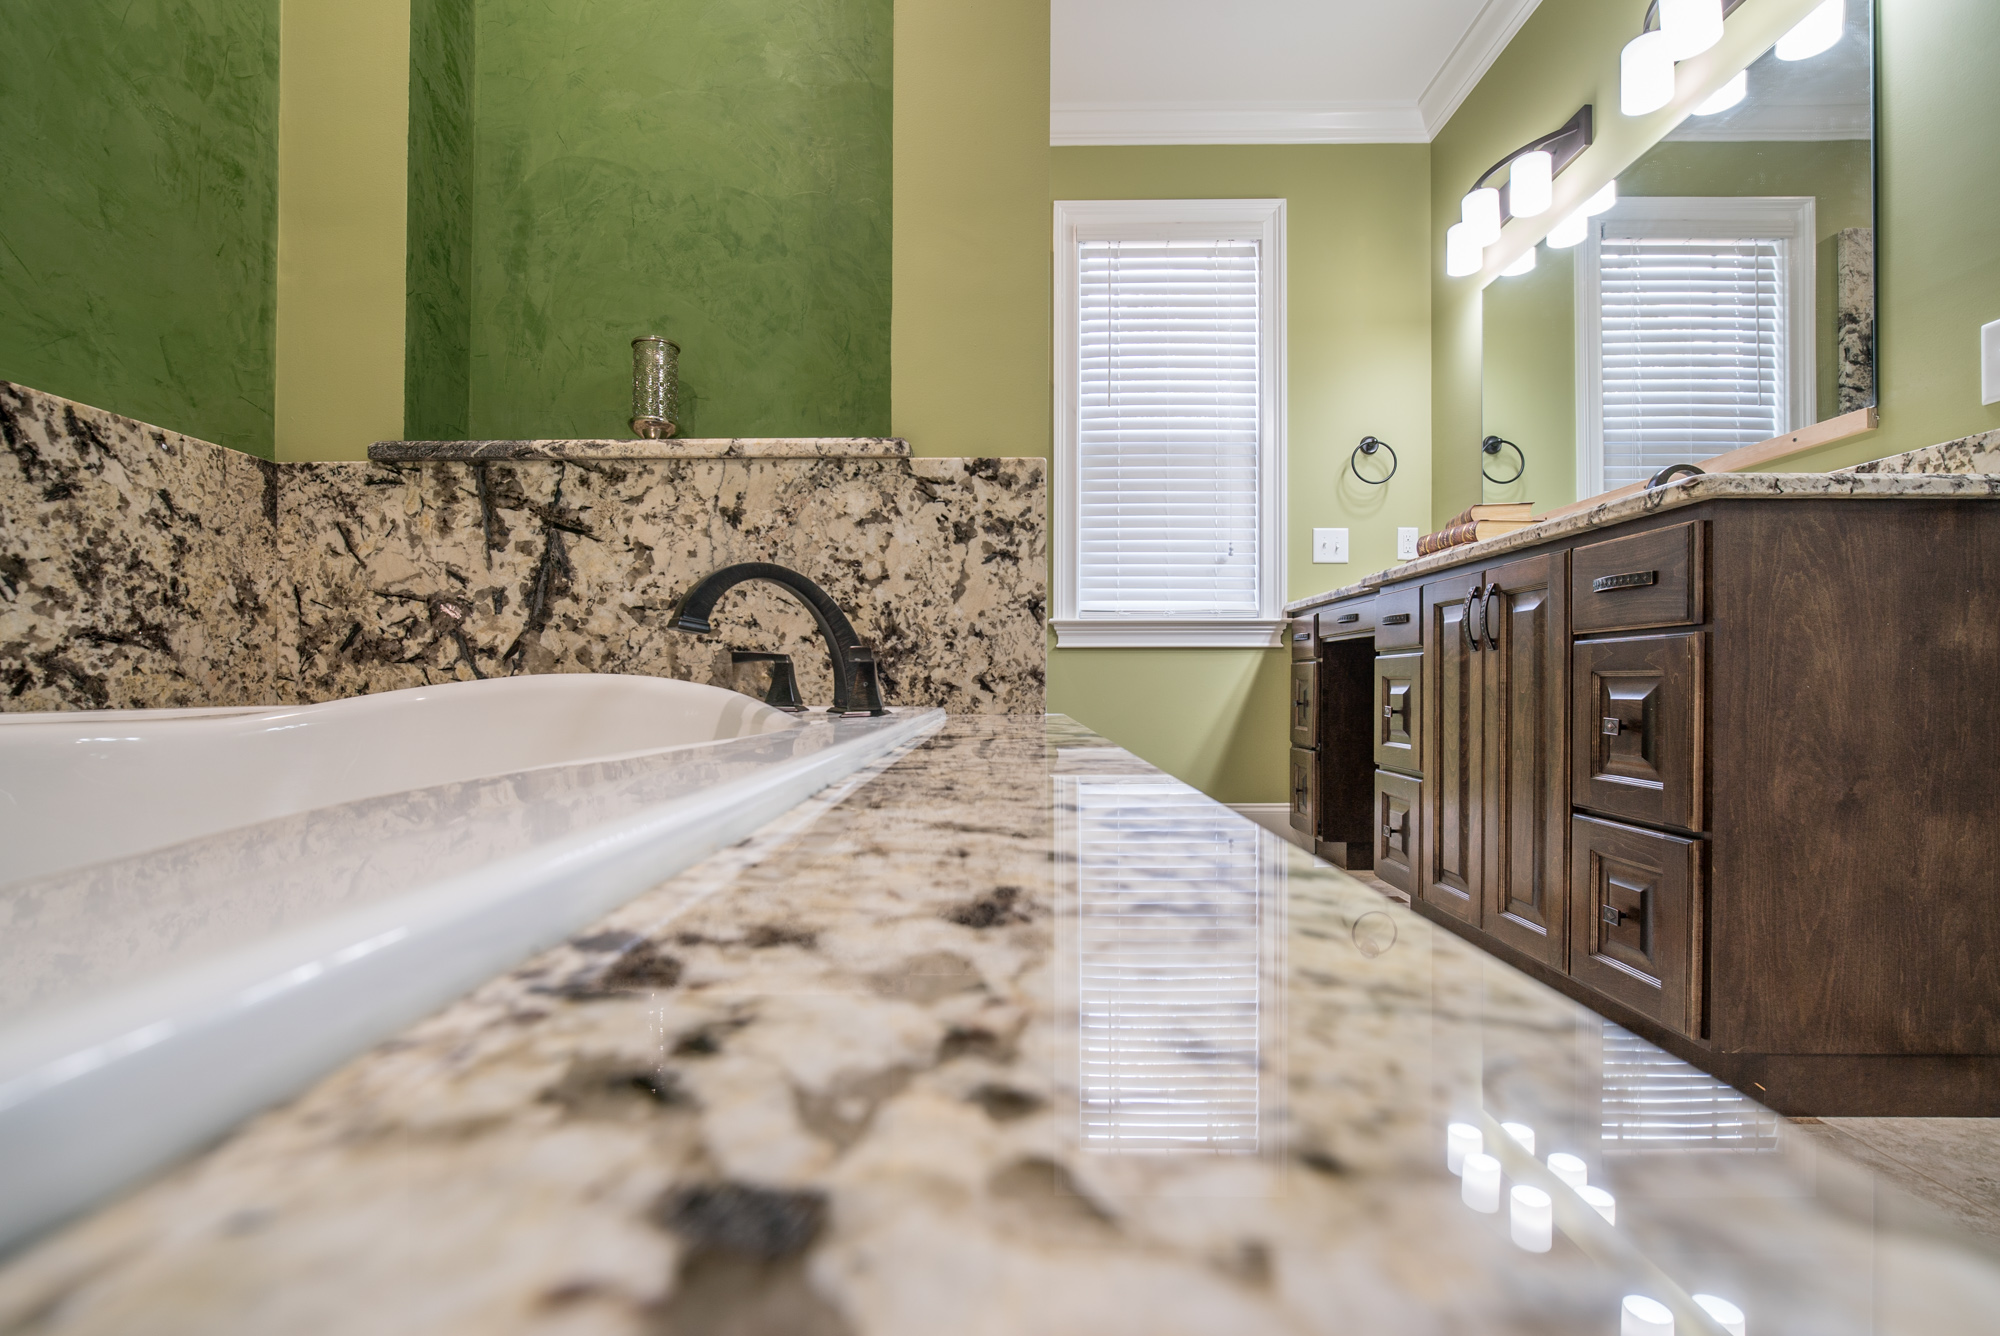 10 Things To Consider When Doing A Bathroom Remodel